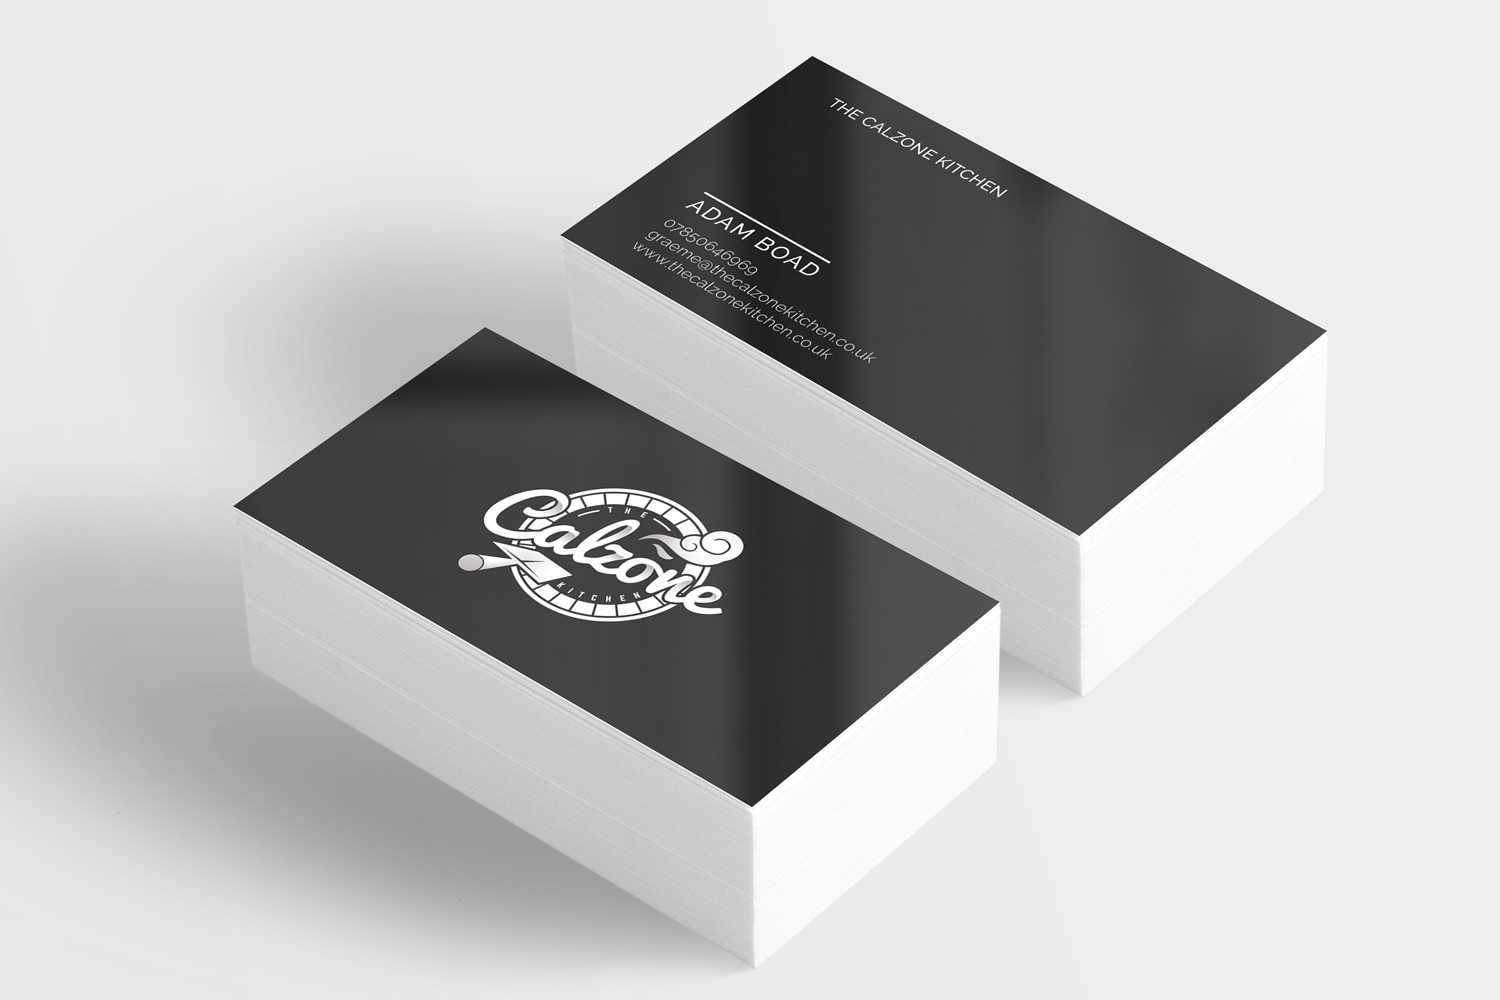 The Calzone Kitchen Business Card Design